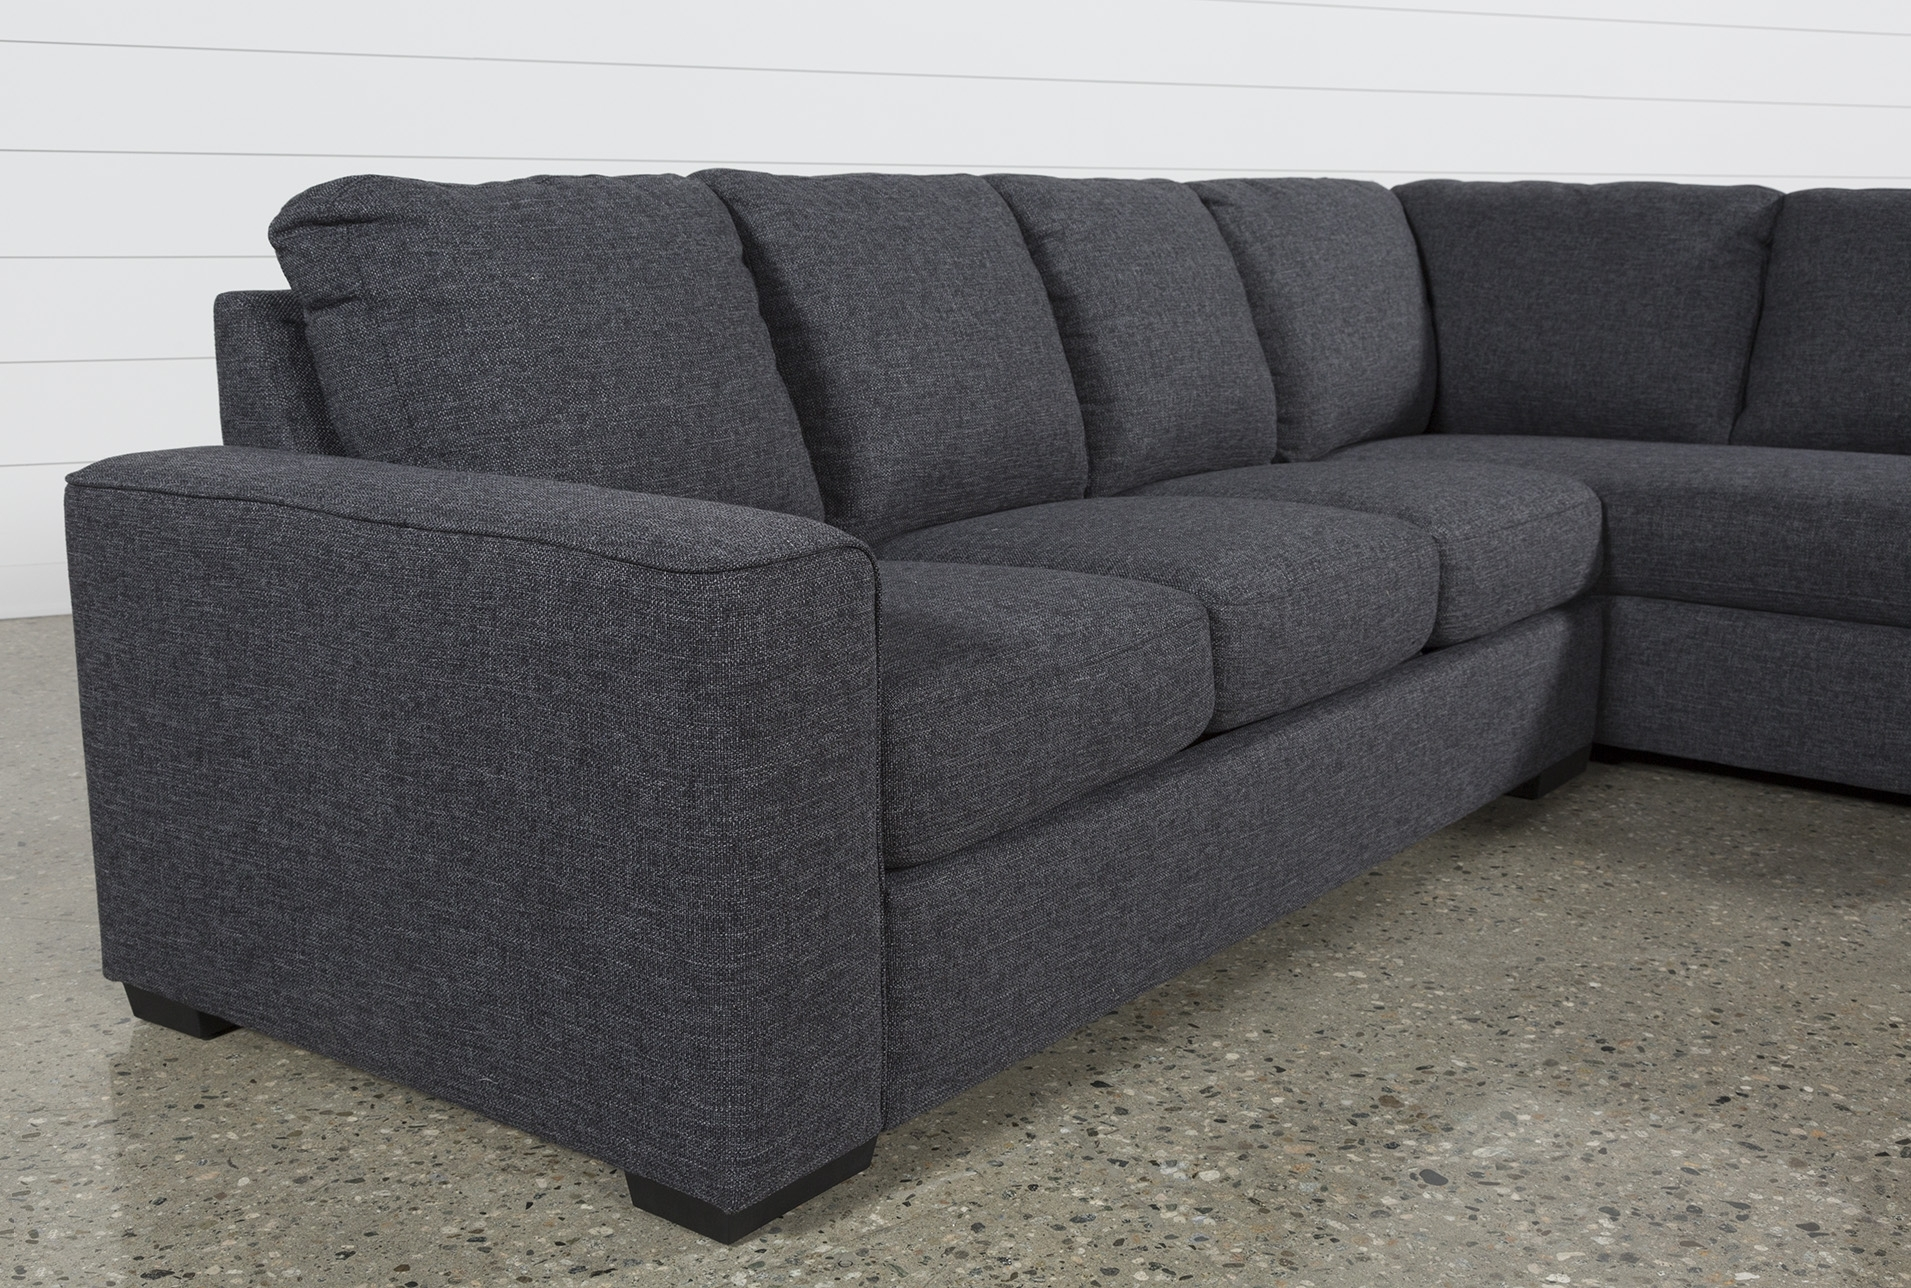 Lucy Dark Grey 2 Piece Sectional W/raf Chaise | Pinterest | Dark Intended For Lucy Grey 2 Piece Sectionals With Laf Chaise (View 5 of 25)